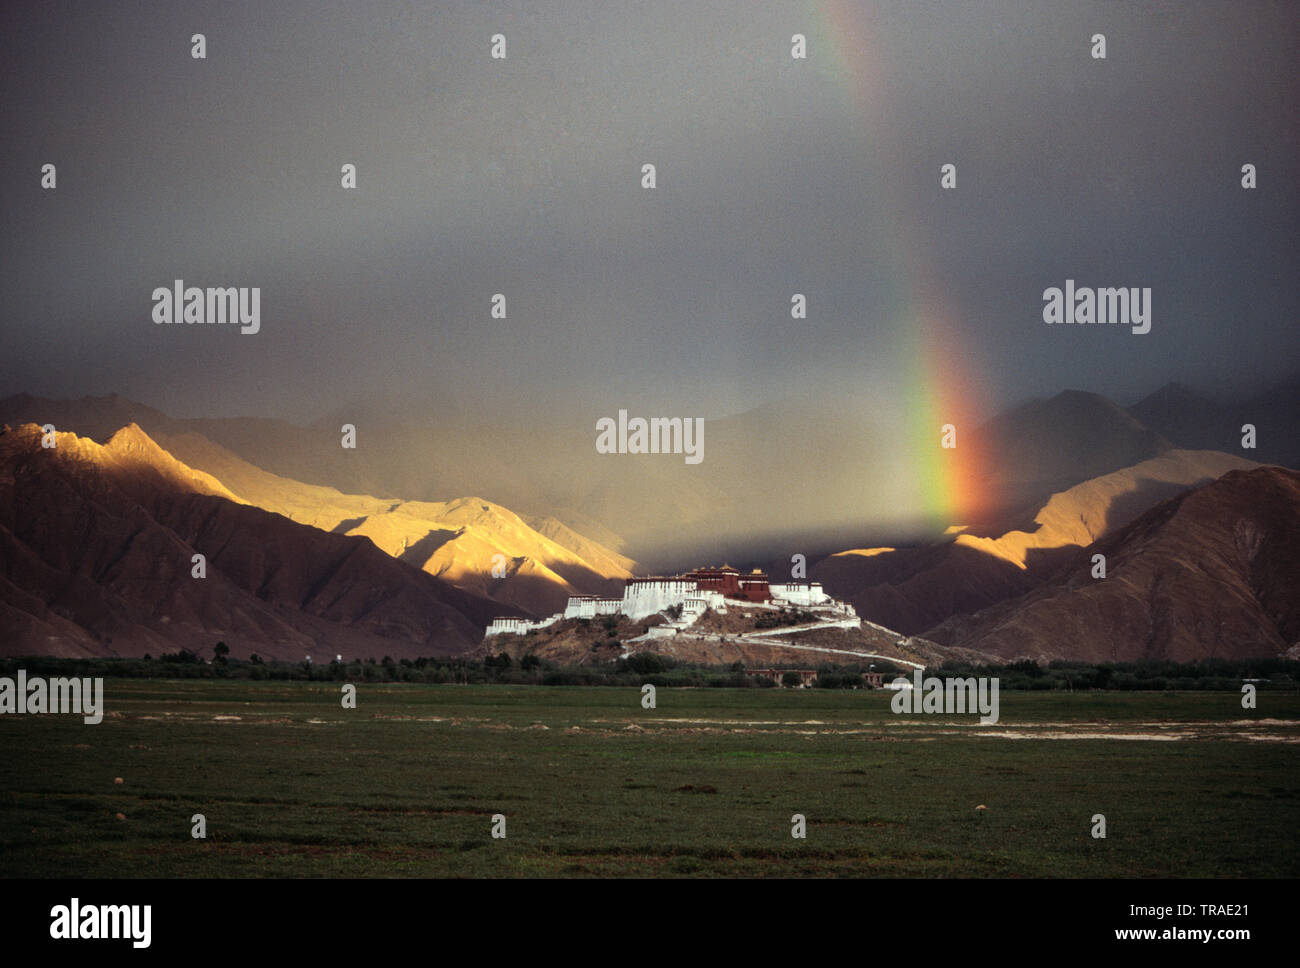 China. Tibet. Lhasa. Potala Palace and rainbow over mountains. - Stock Image